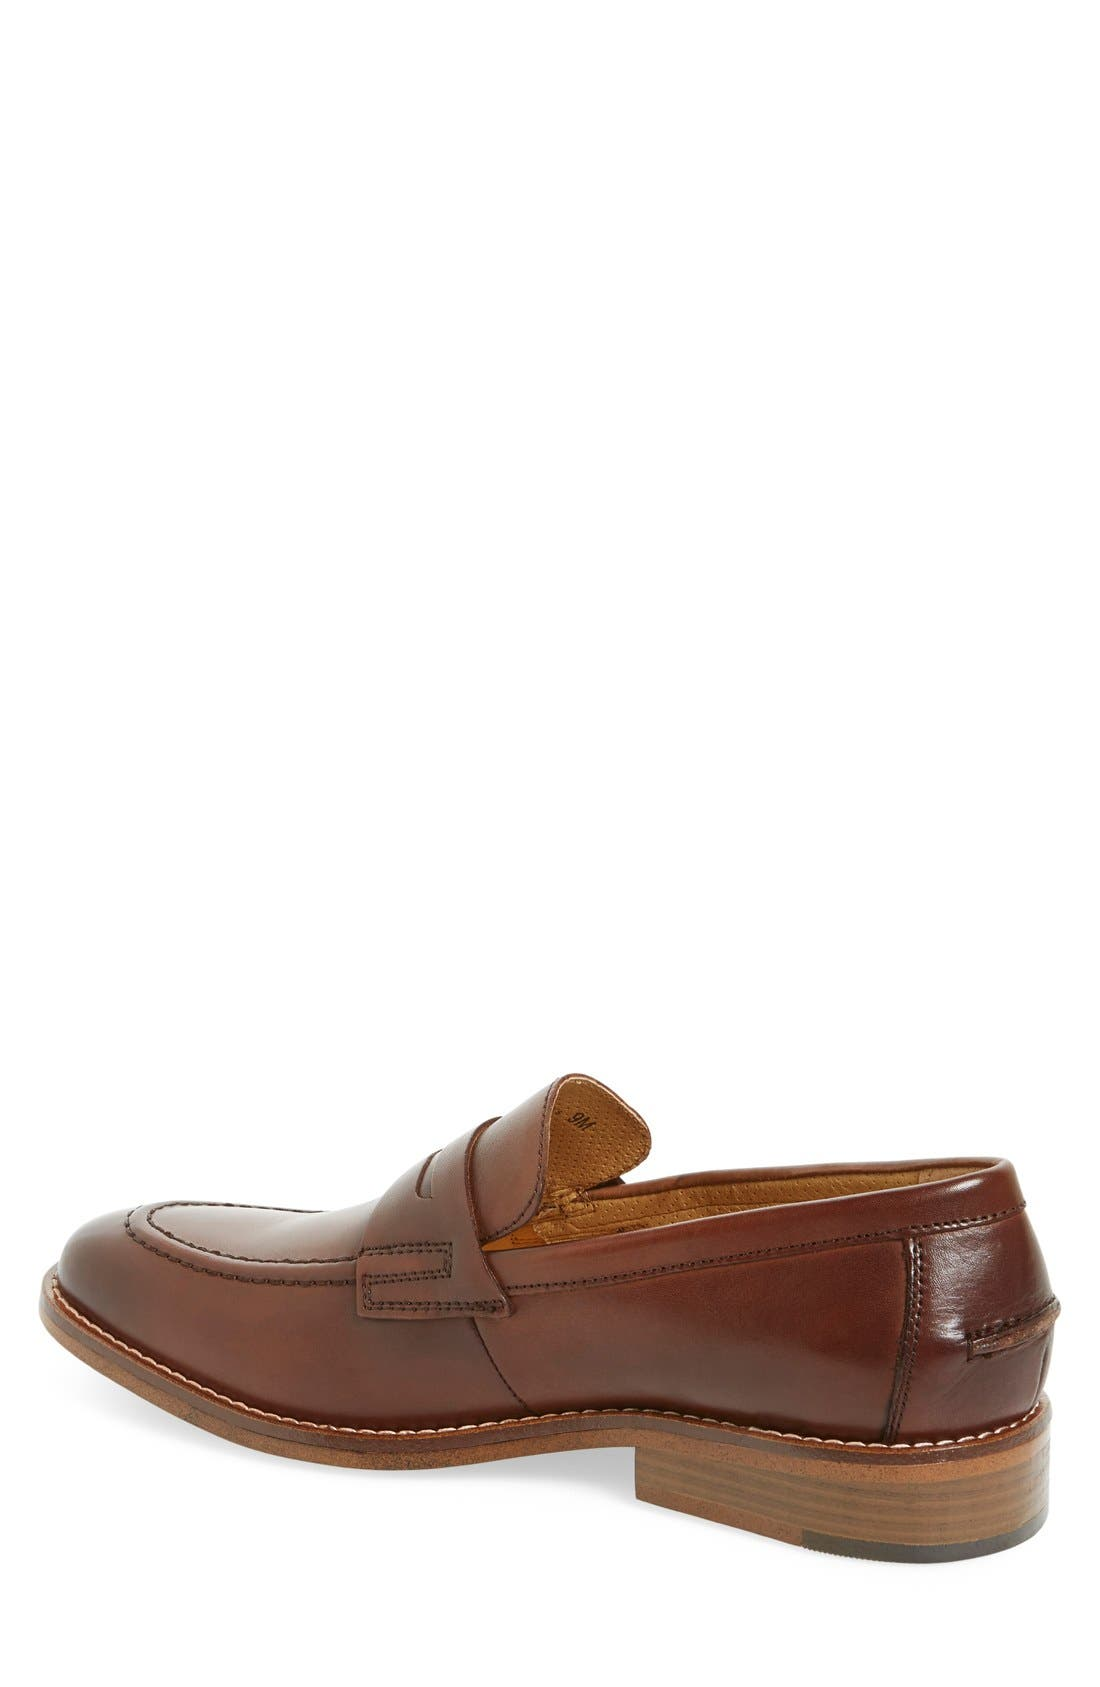 'Conner' Penny Loafer,                             Alternate thumbnail 2, color,                             British Tan Leather